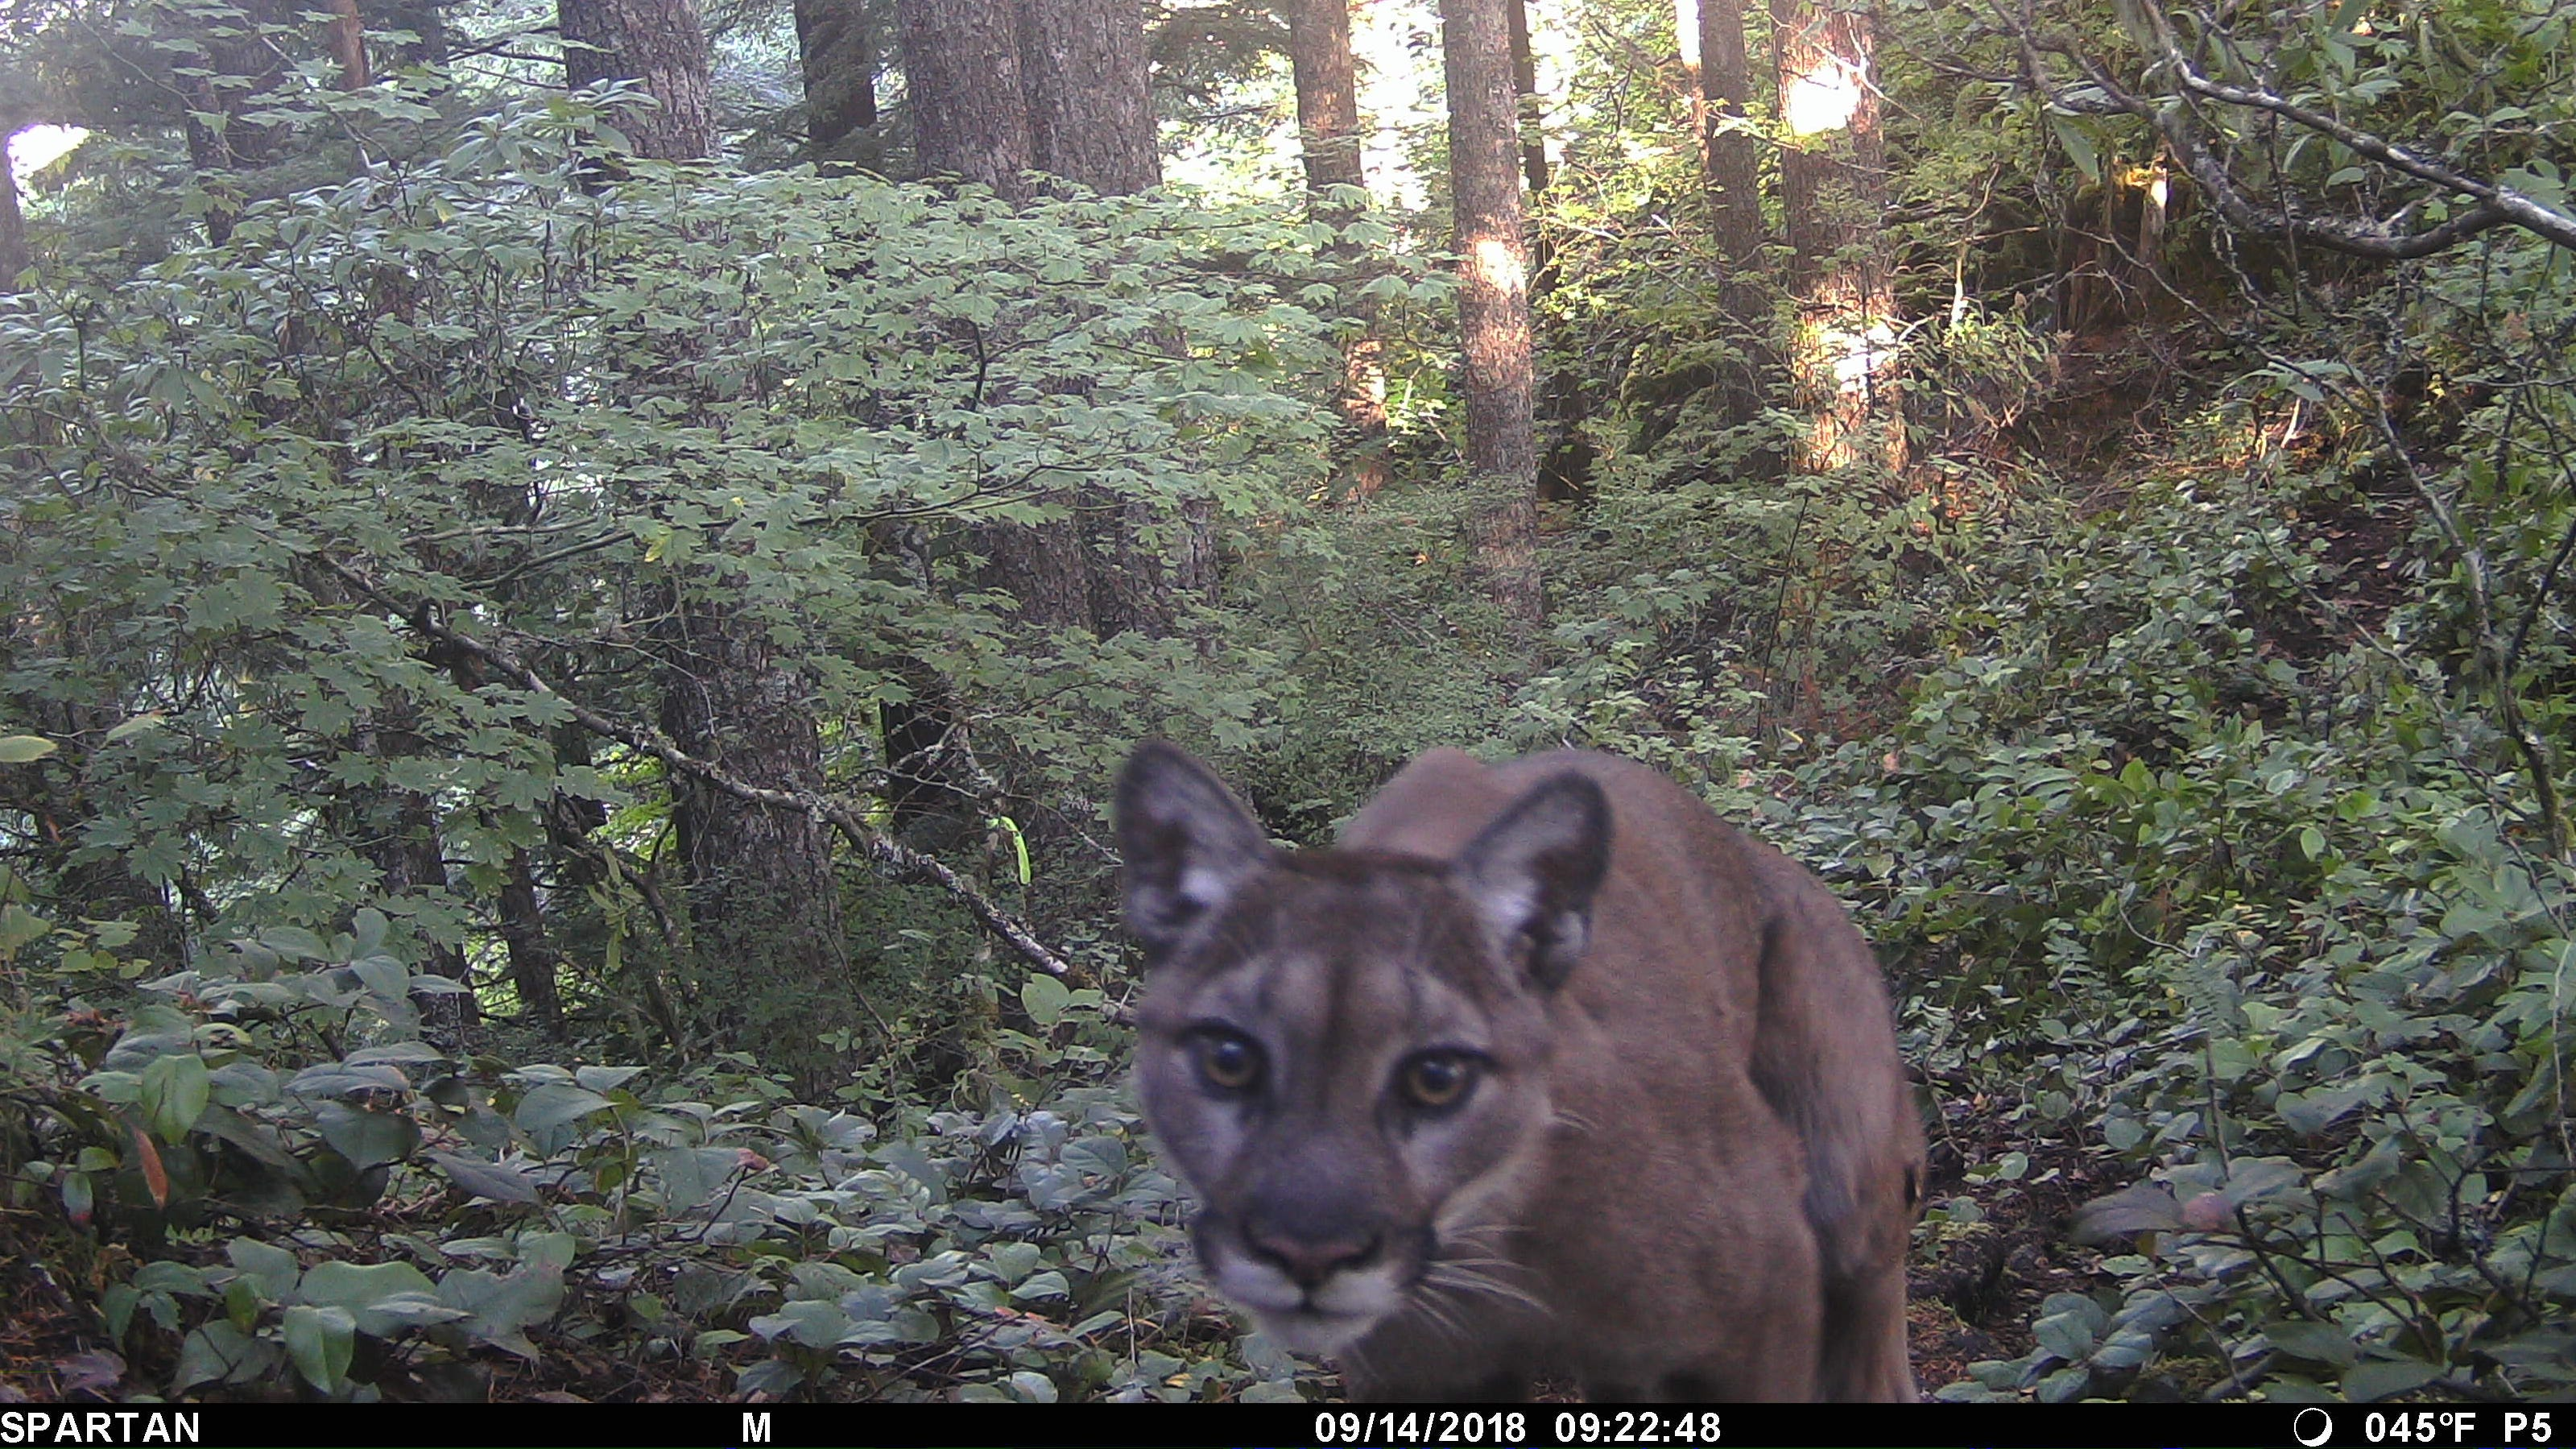 Cougar killed by state 'highly likely' for fatal attack on hiker Diana Bober, but no DNA evidence